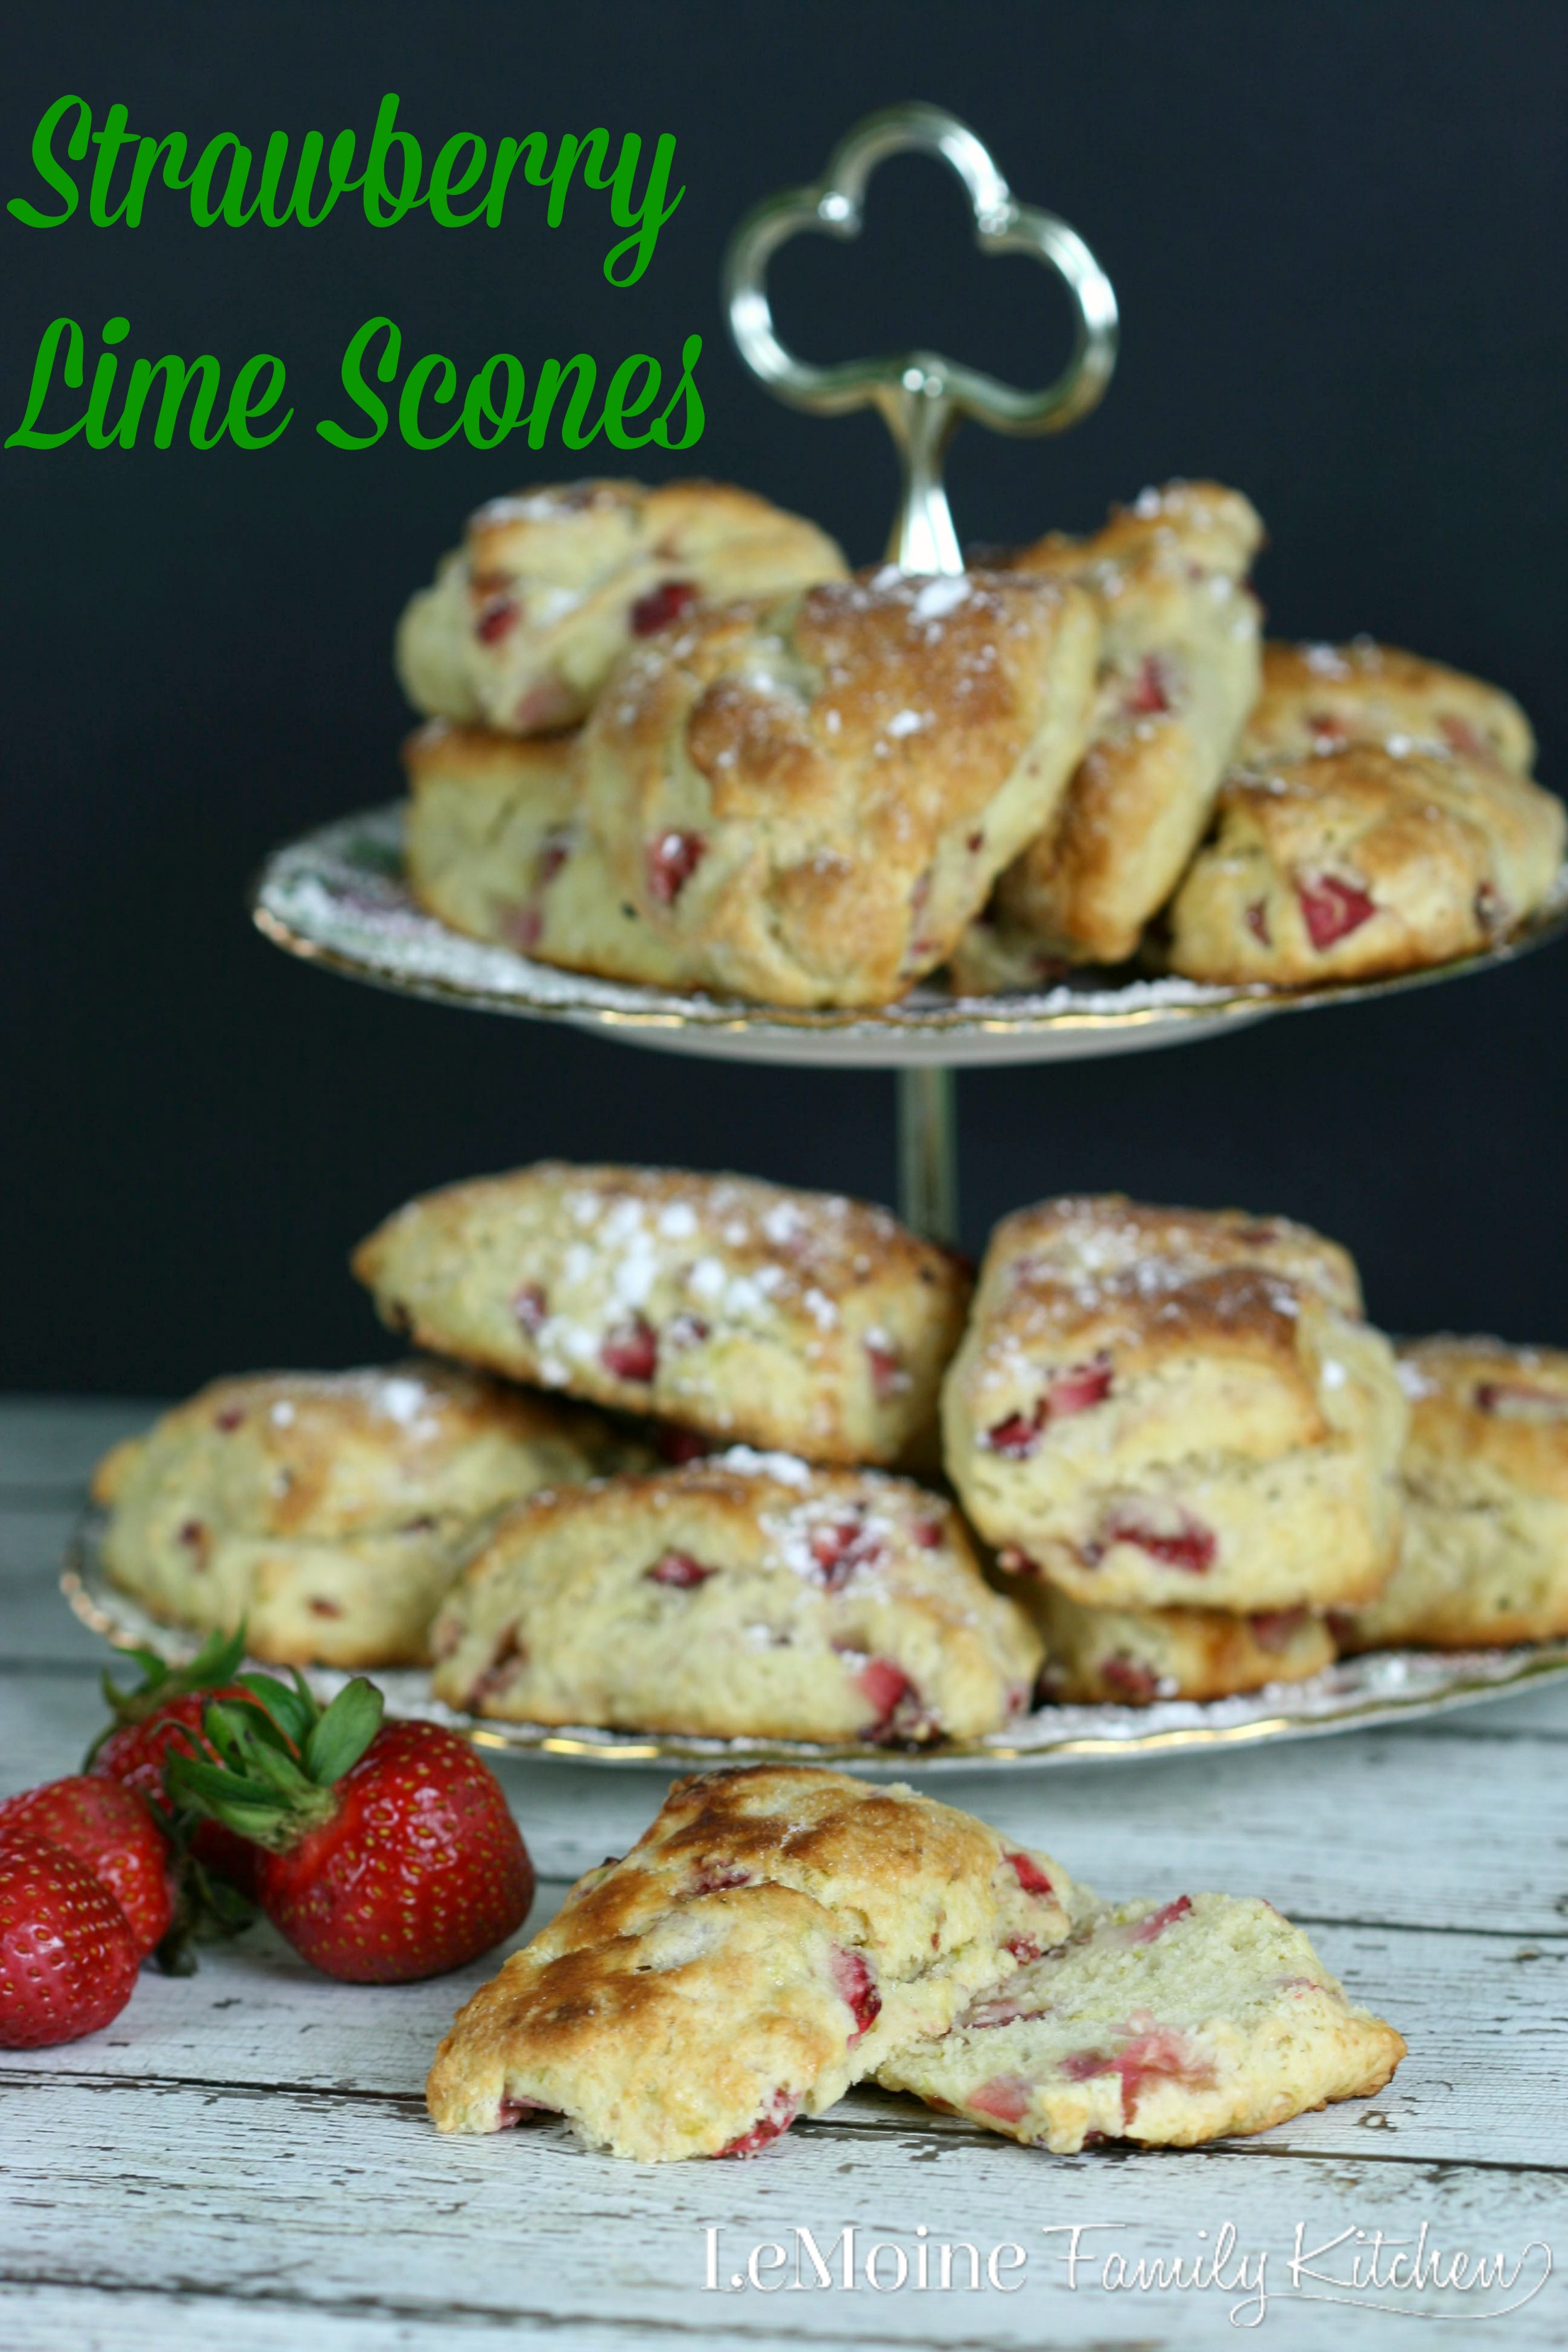 Strawberry Lime Scones